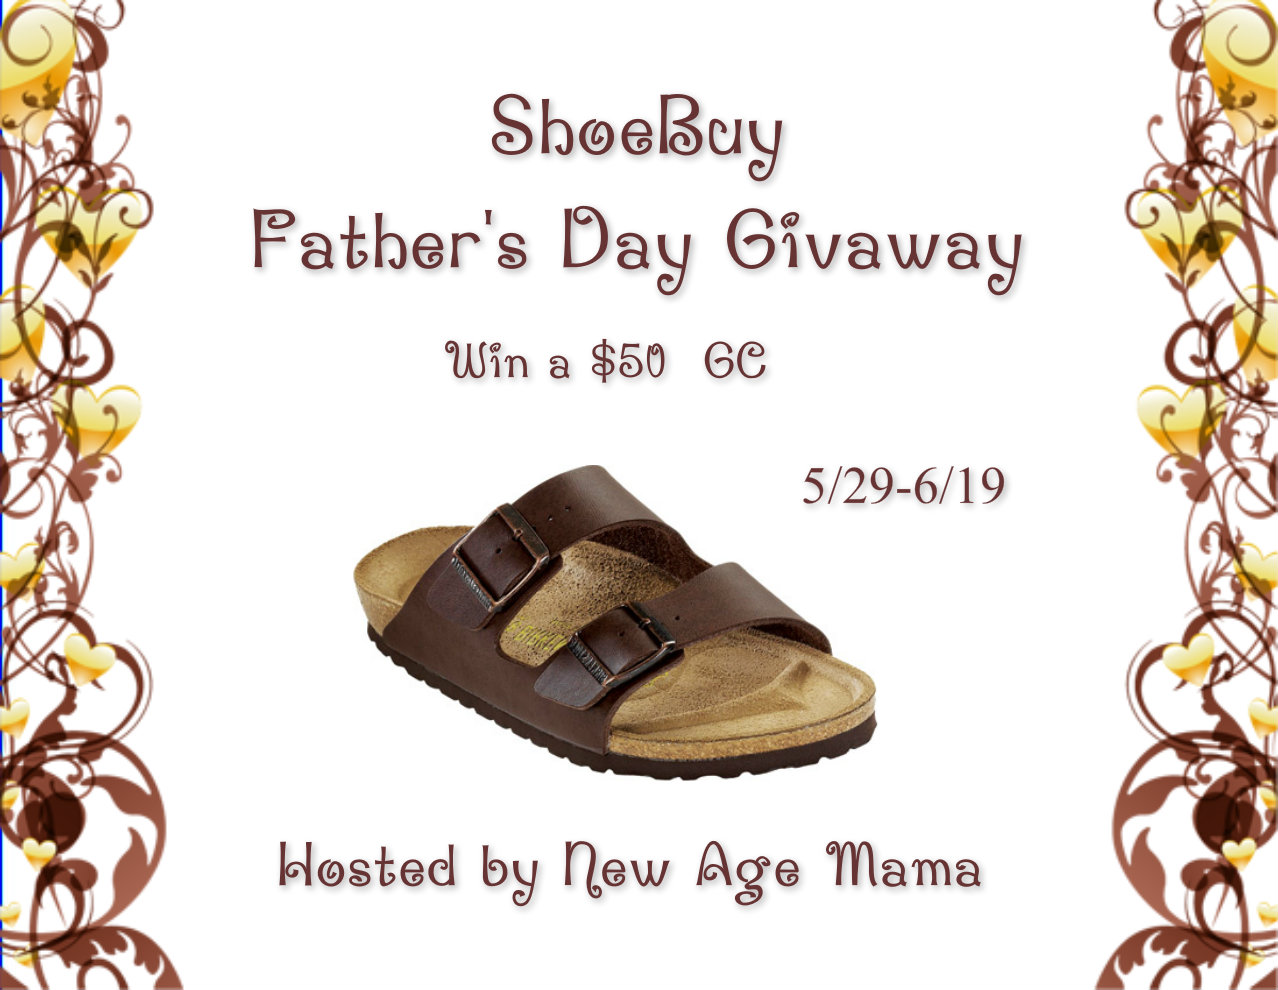 3d1bcfe22c03 New Age Mama  Father s Day Gift Guide -  50 Shoebuy Gift Card  Giveaway